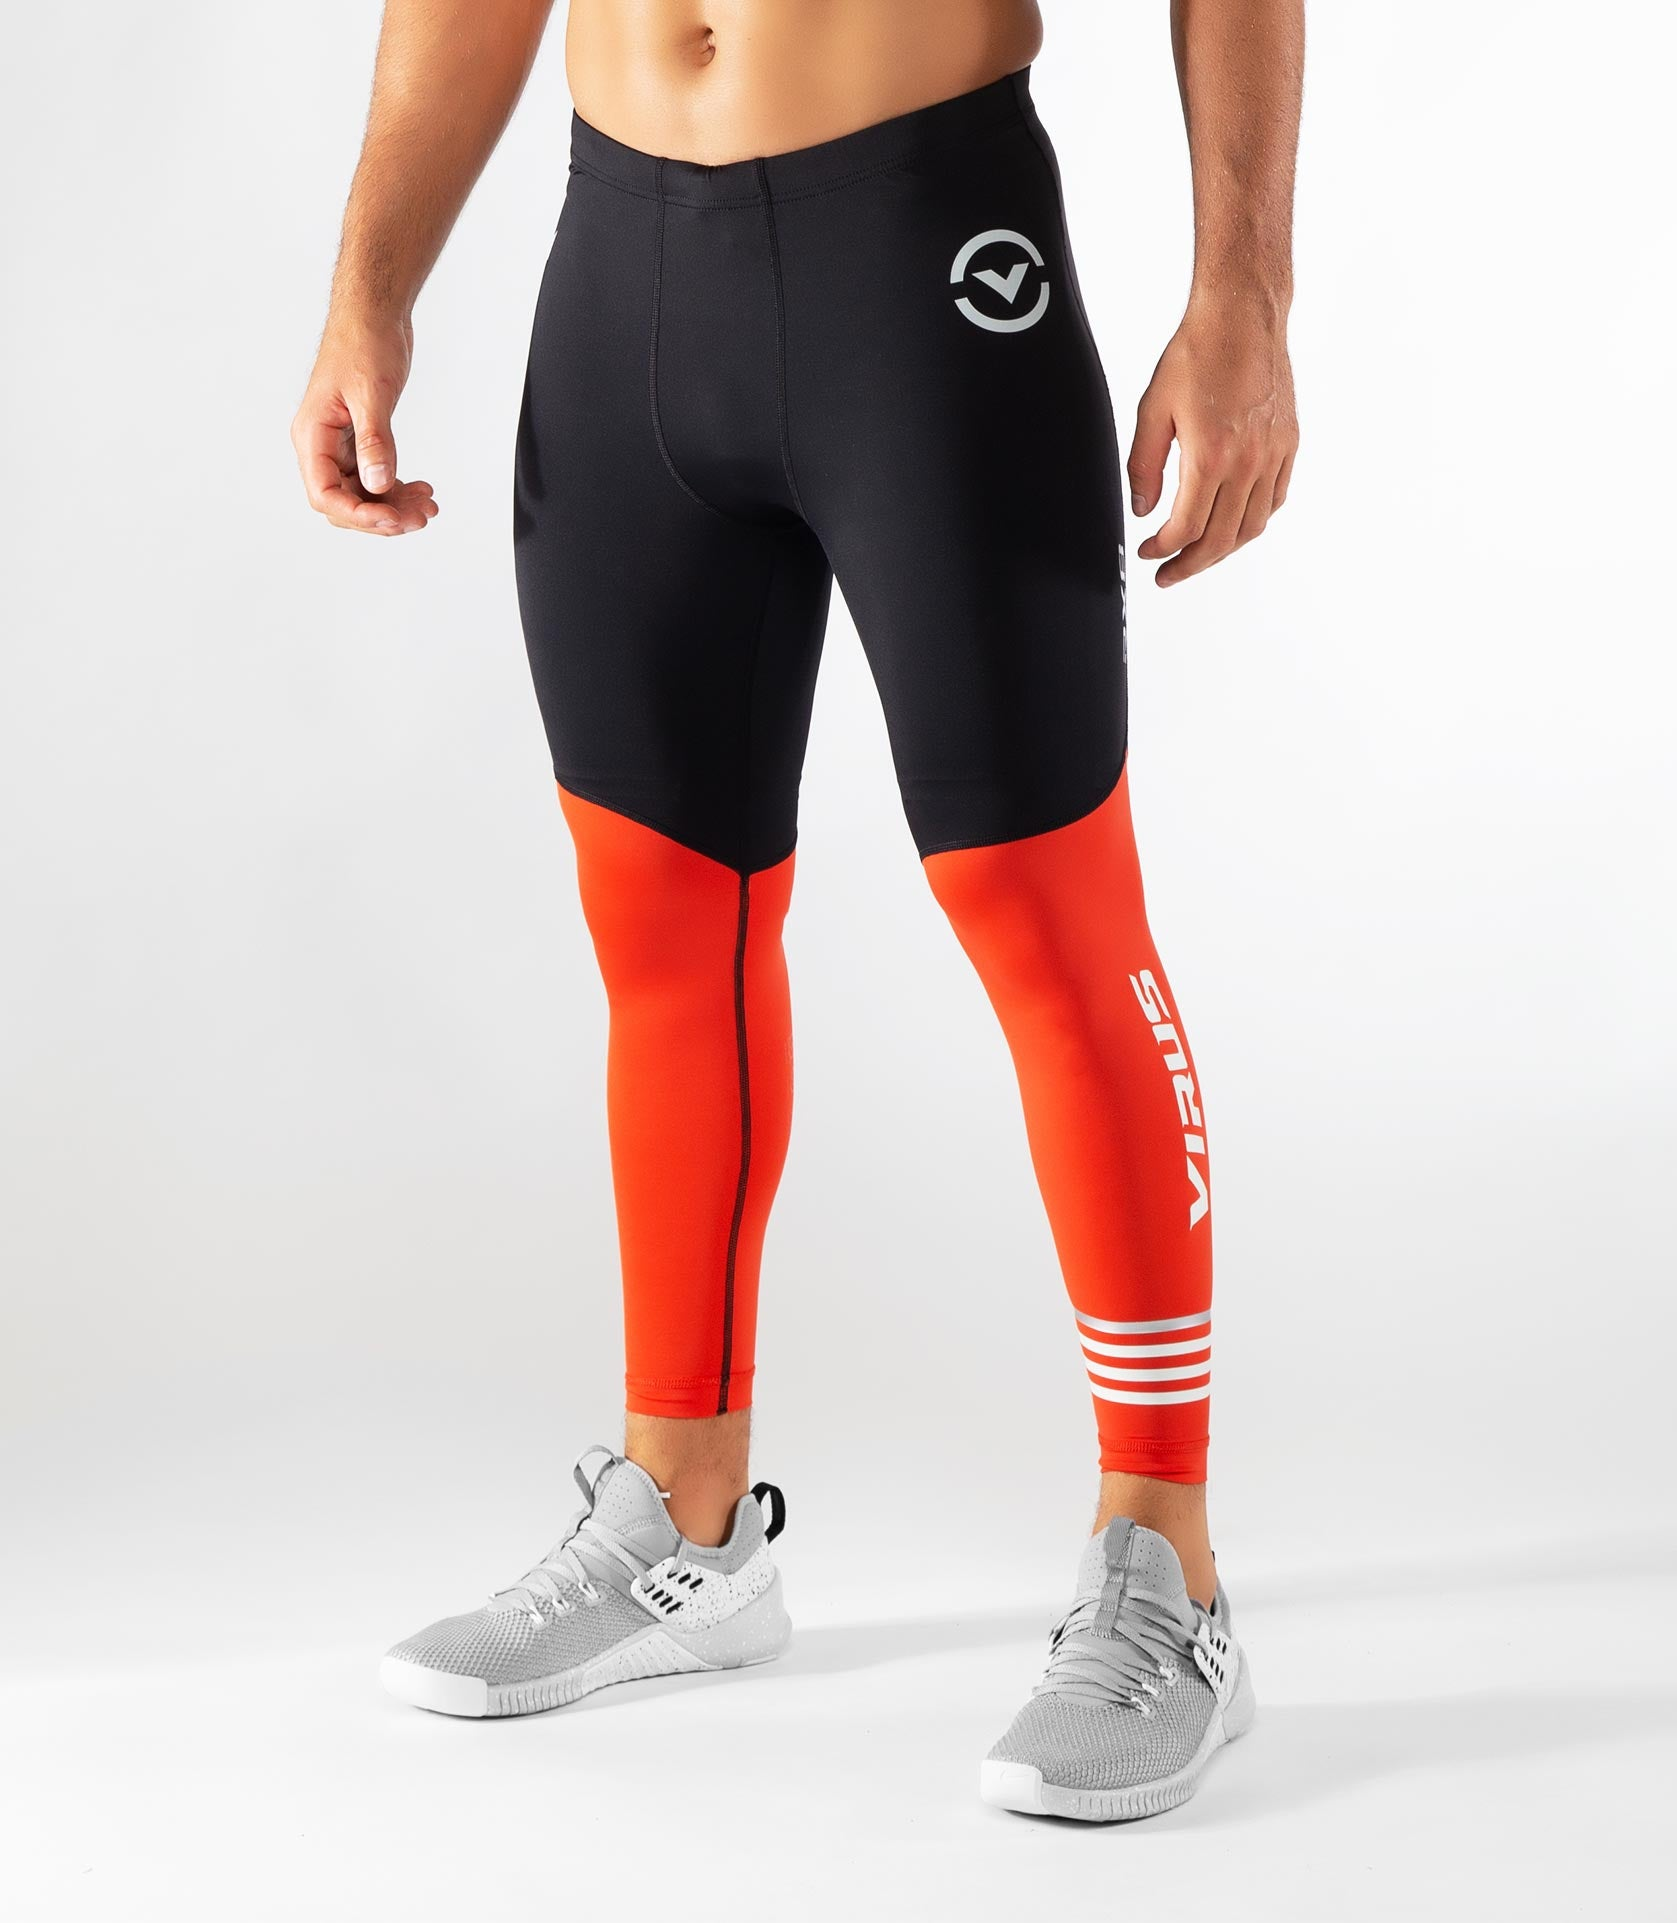 1ac643aeb1 RX8.5 | Stay Cool Compression Pants – VIRUS Performance